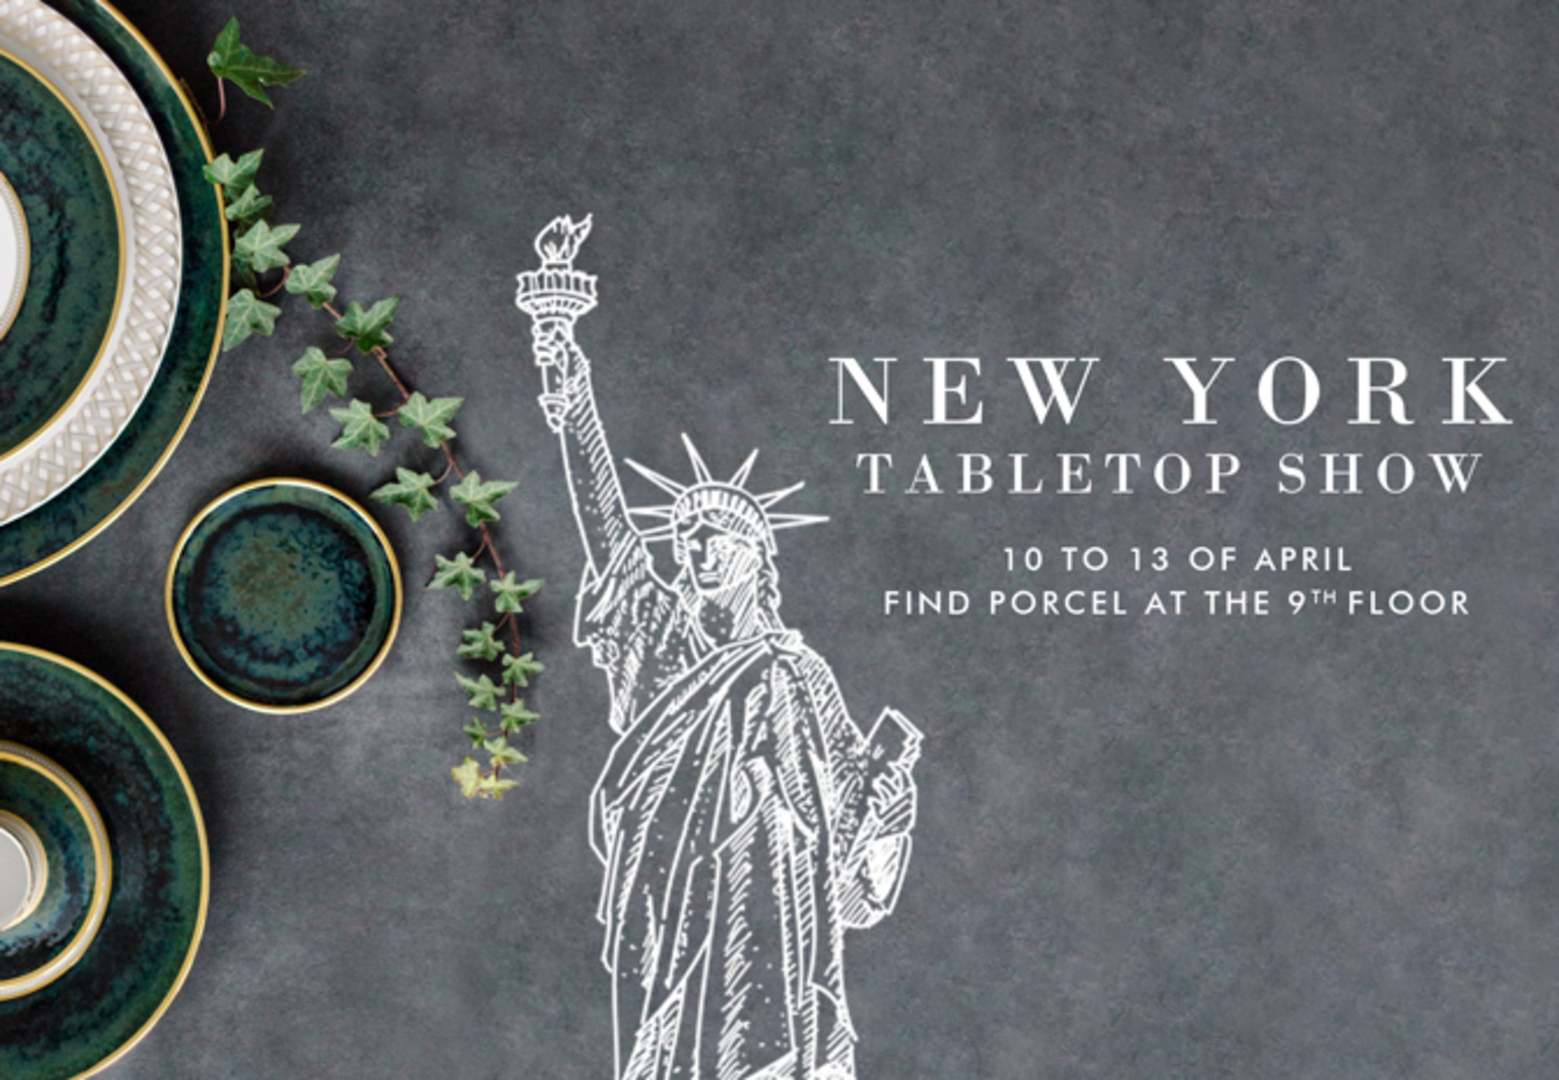 the New York Tabletop Show 0